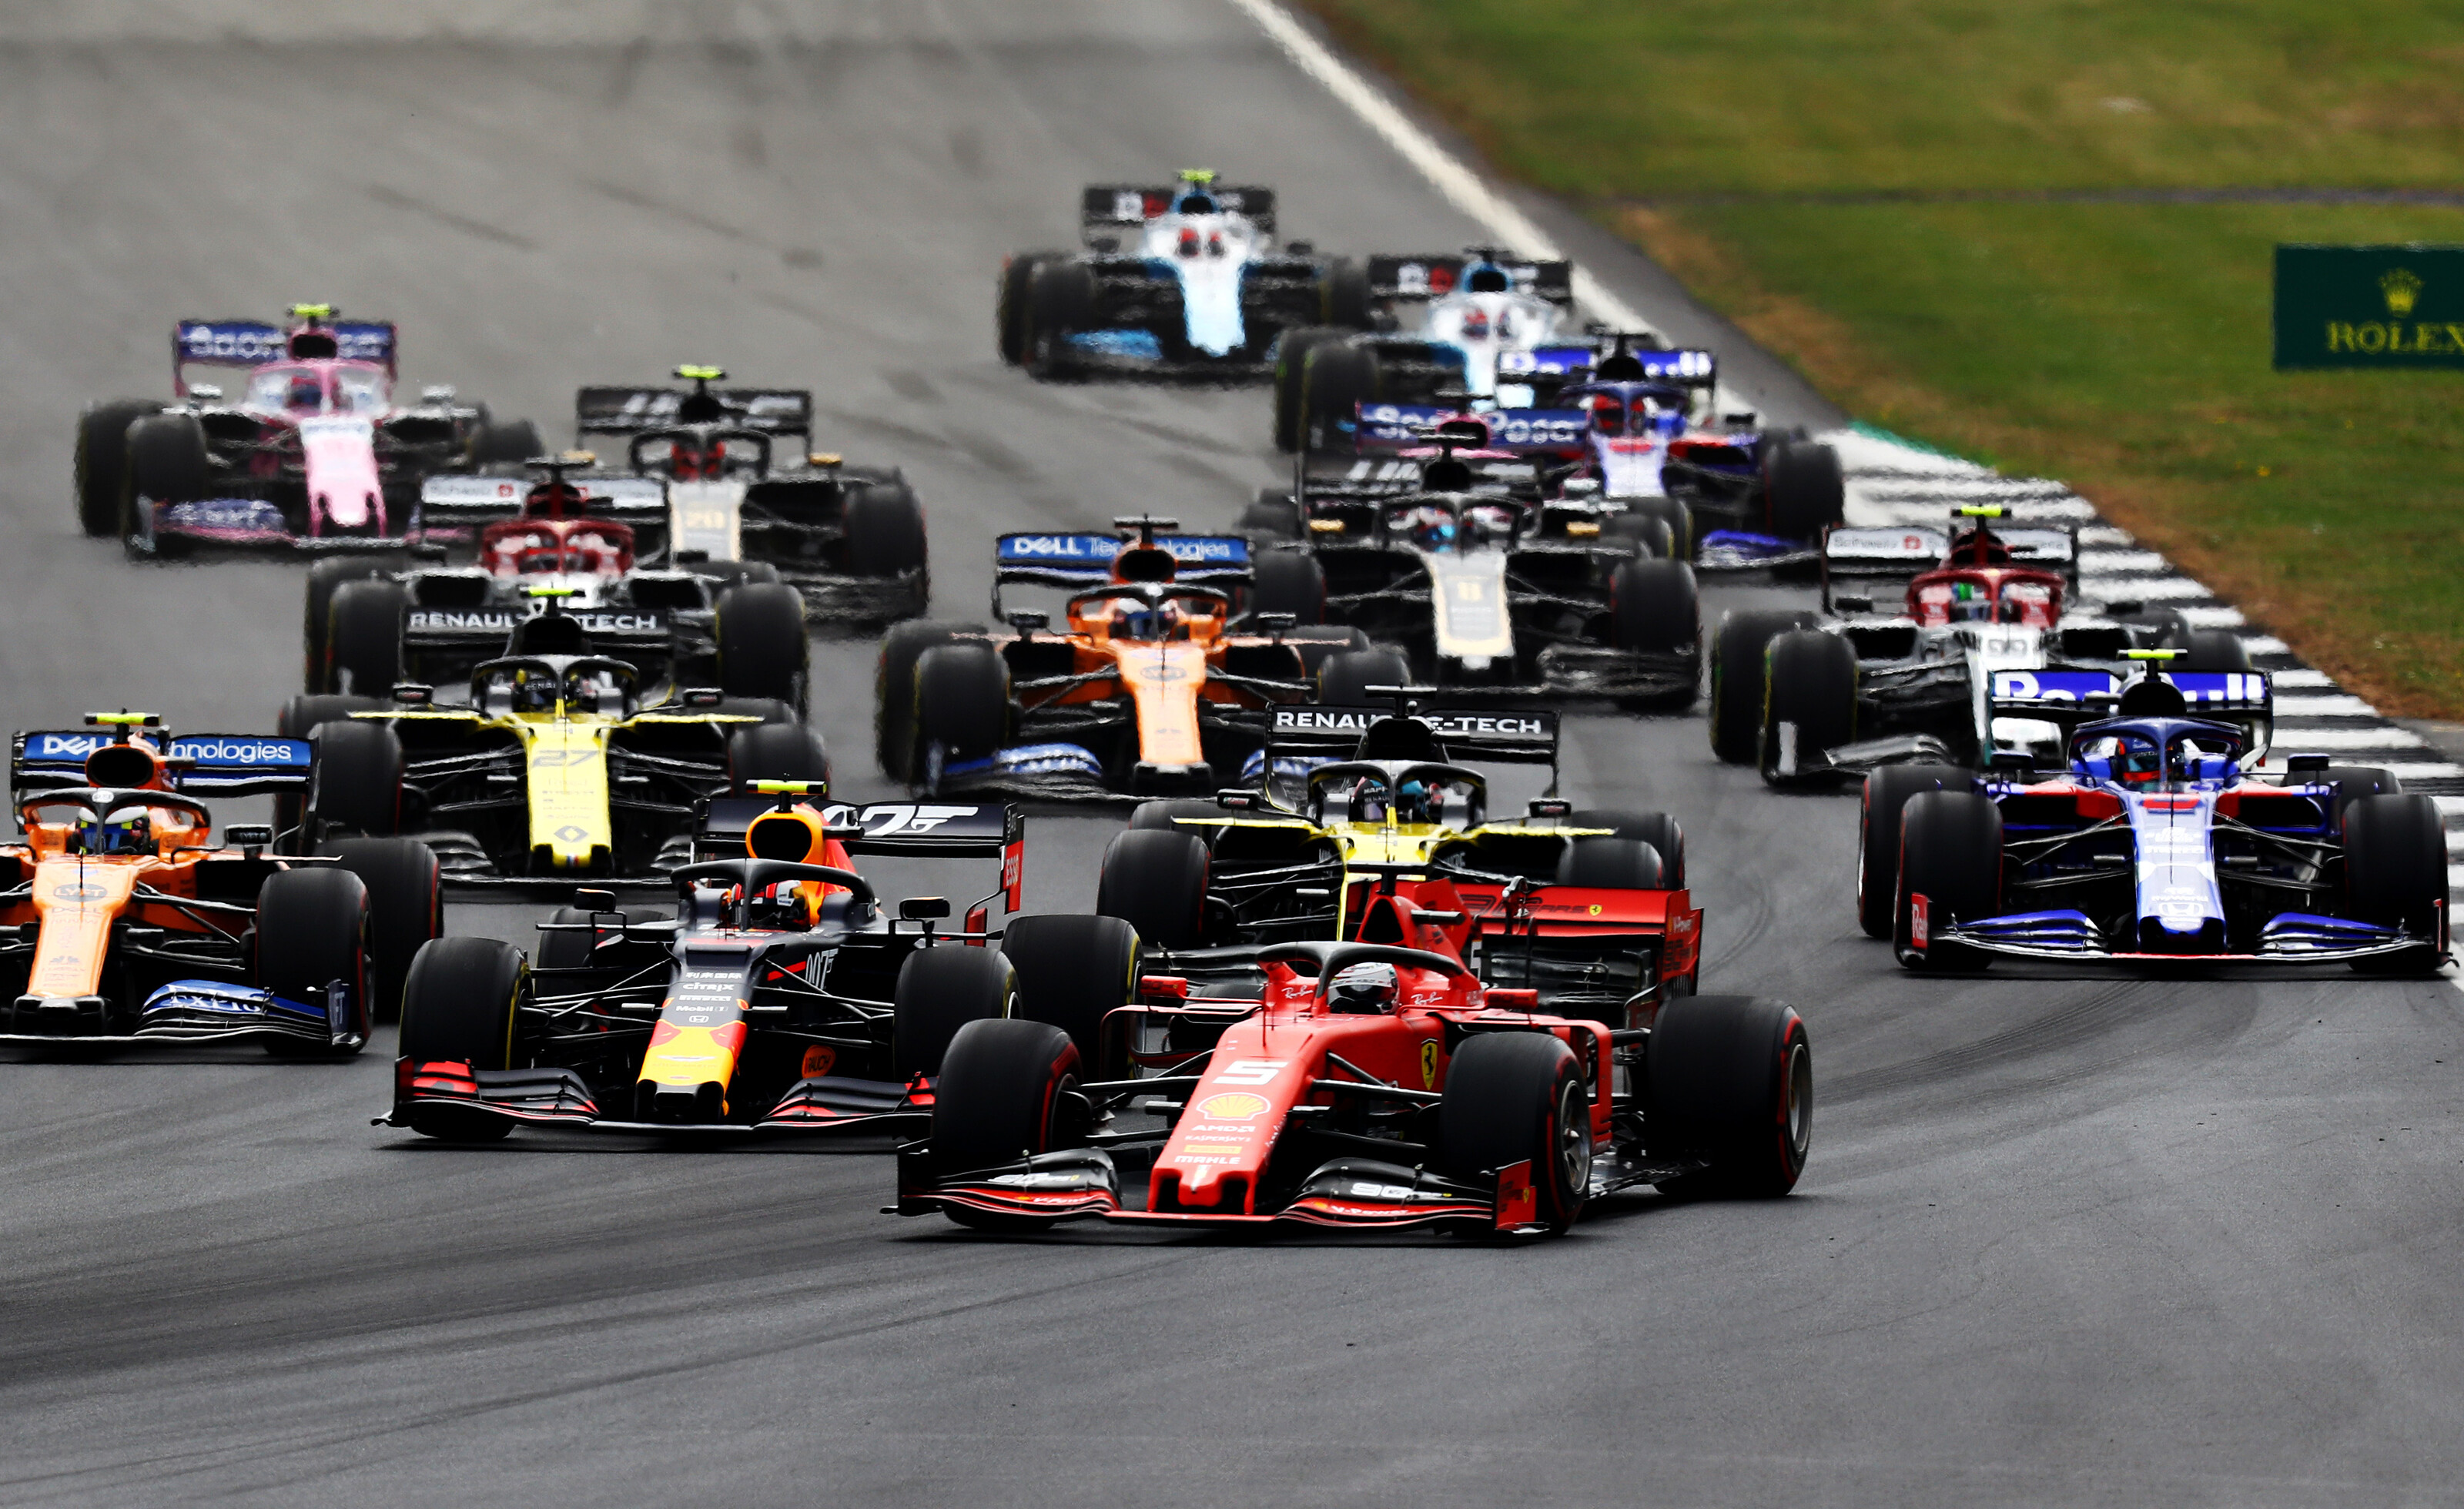 F1 poised for qualifying races in 2020